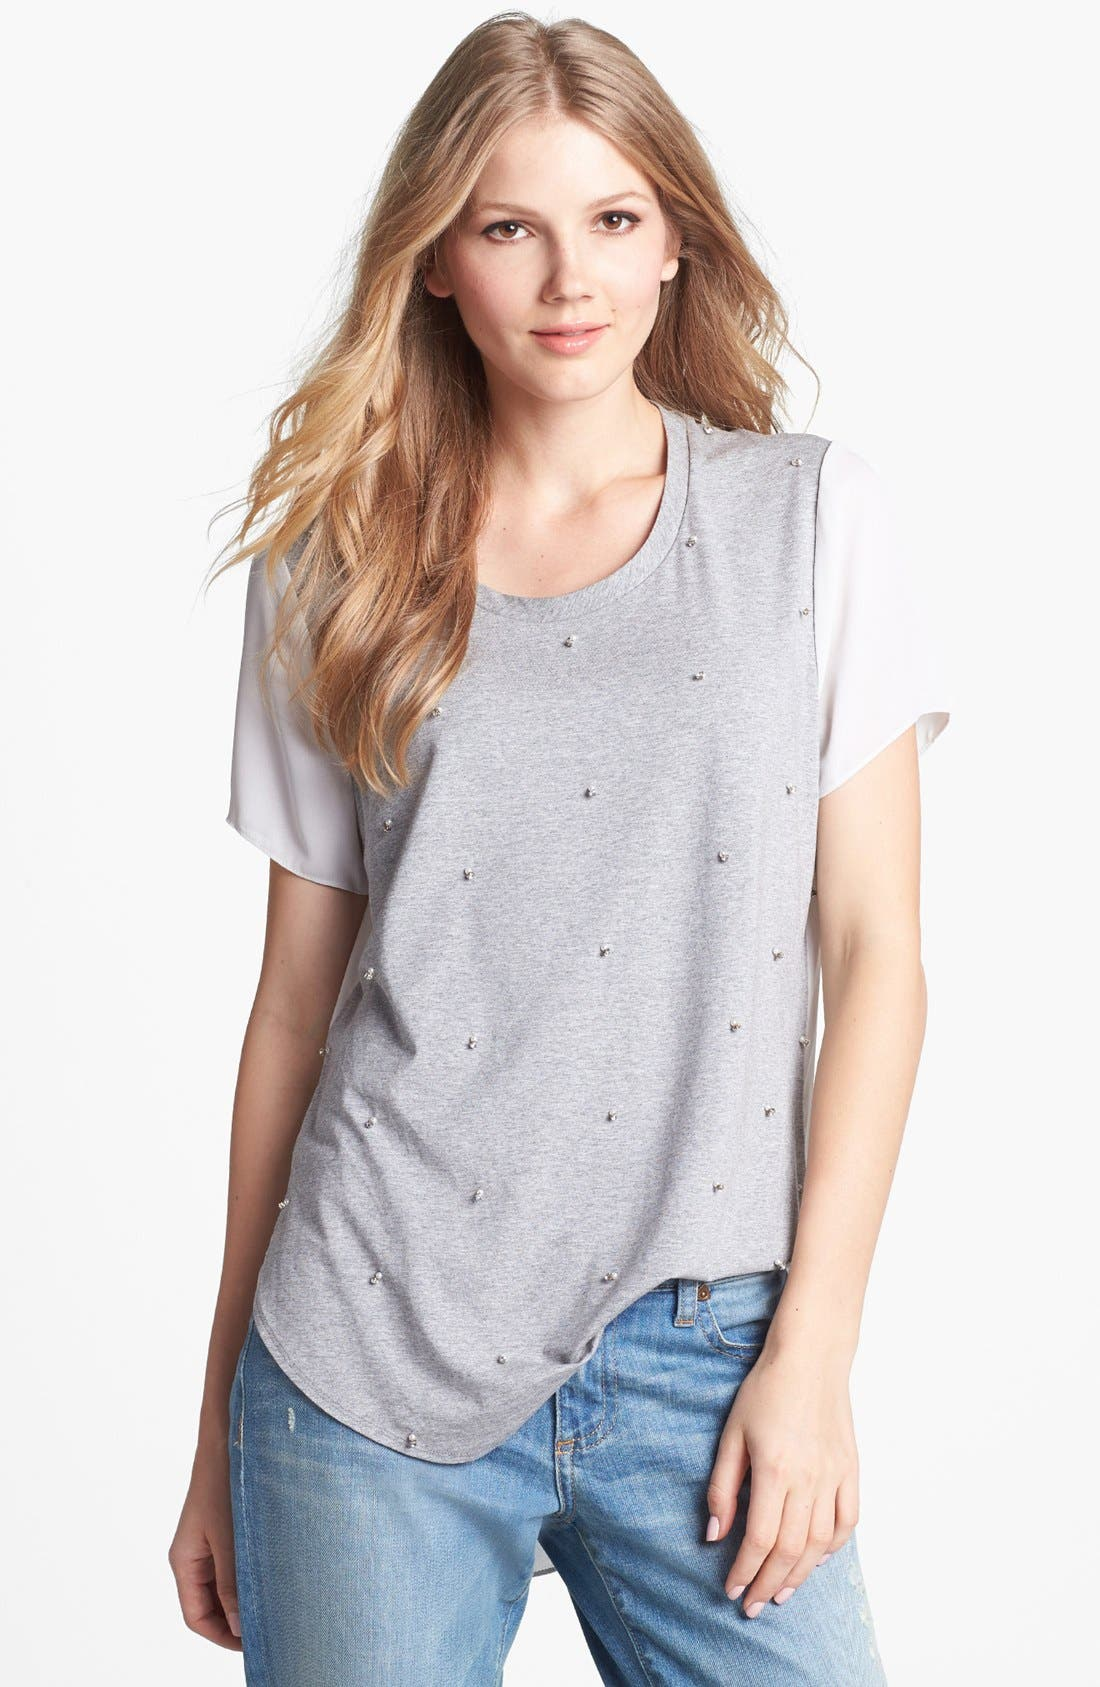 Main Image - Vince Camuto Woven Back Embellished Tee